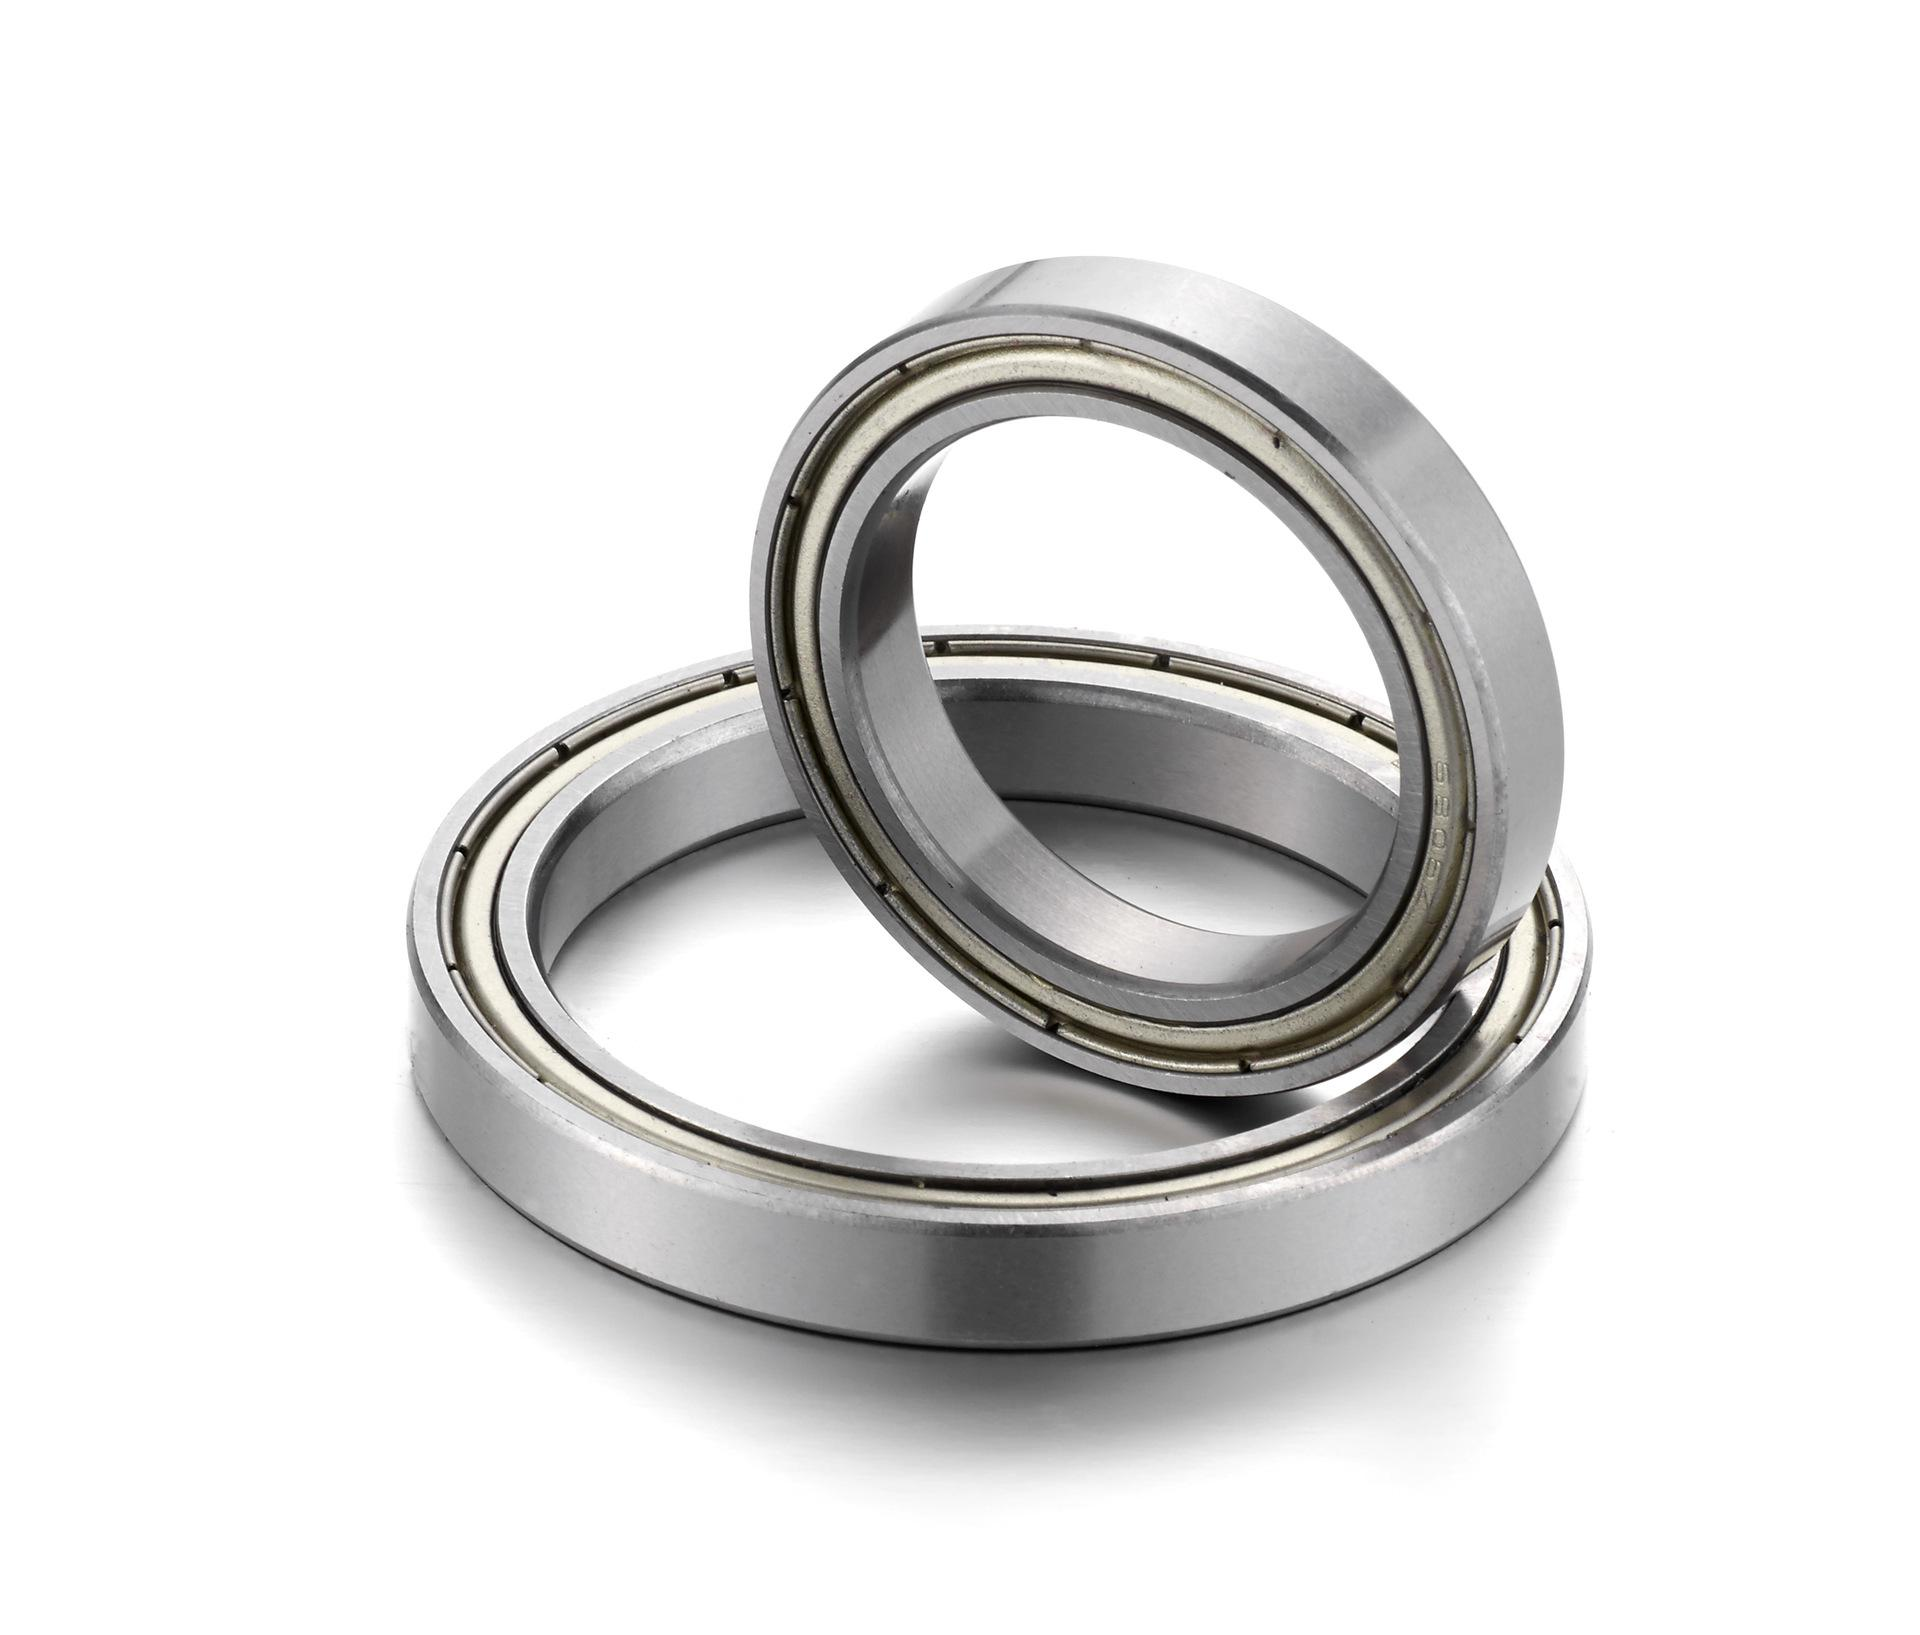 6926M ABEC-1 130x180x24MM Metric Thin Section Bearings 61926M Brass cage 2018 hot sale time limited steel rolamentos 6821 2rs abec 1 105x130x13mm metric thin section bearings 61821 rs 6821rs